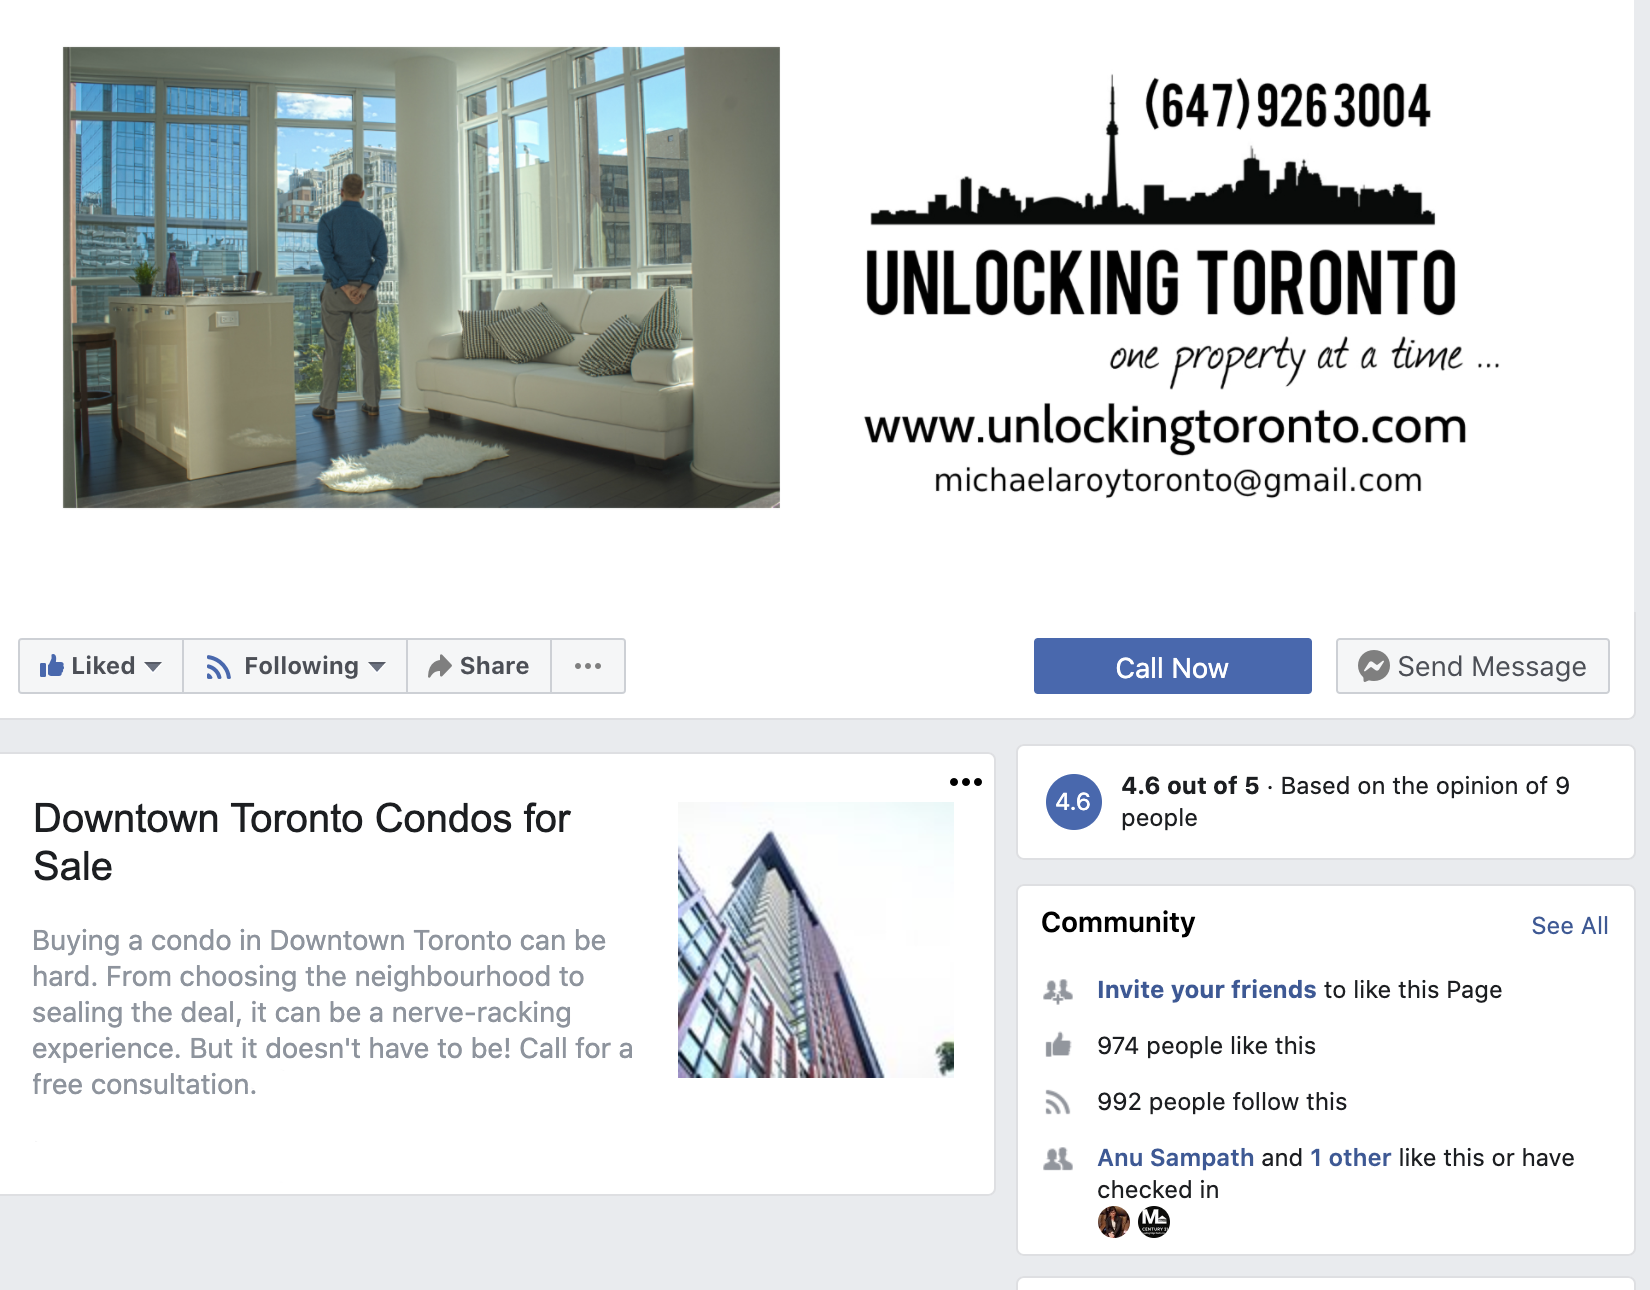 Unolocking Toronto, Michael Roy